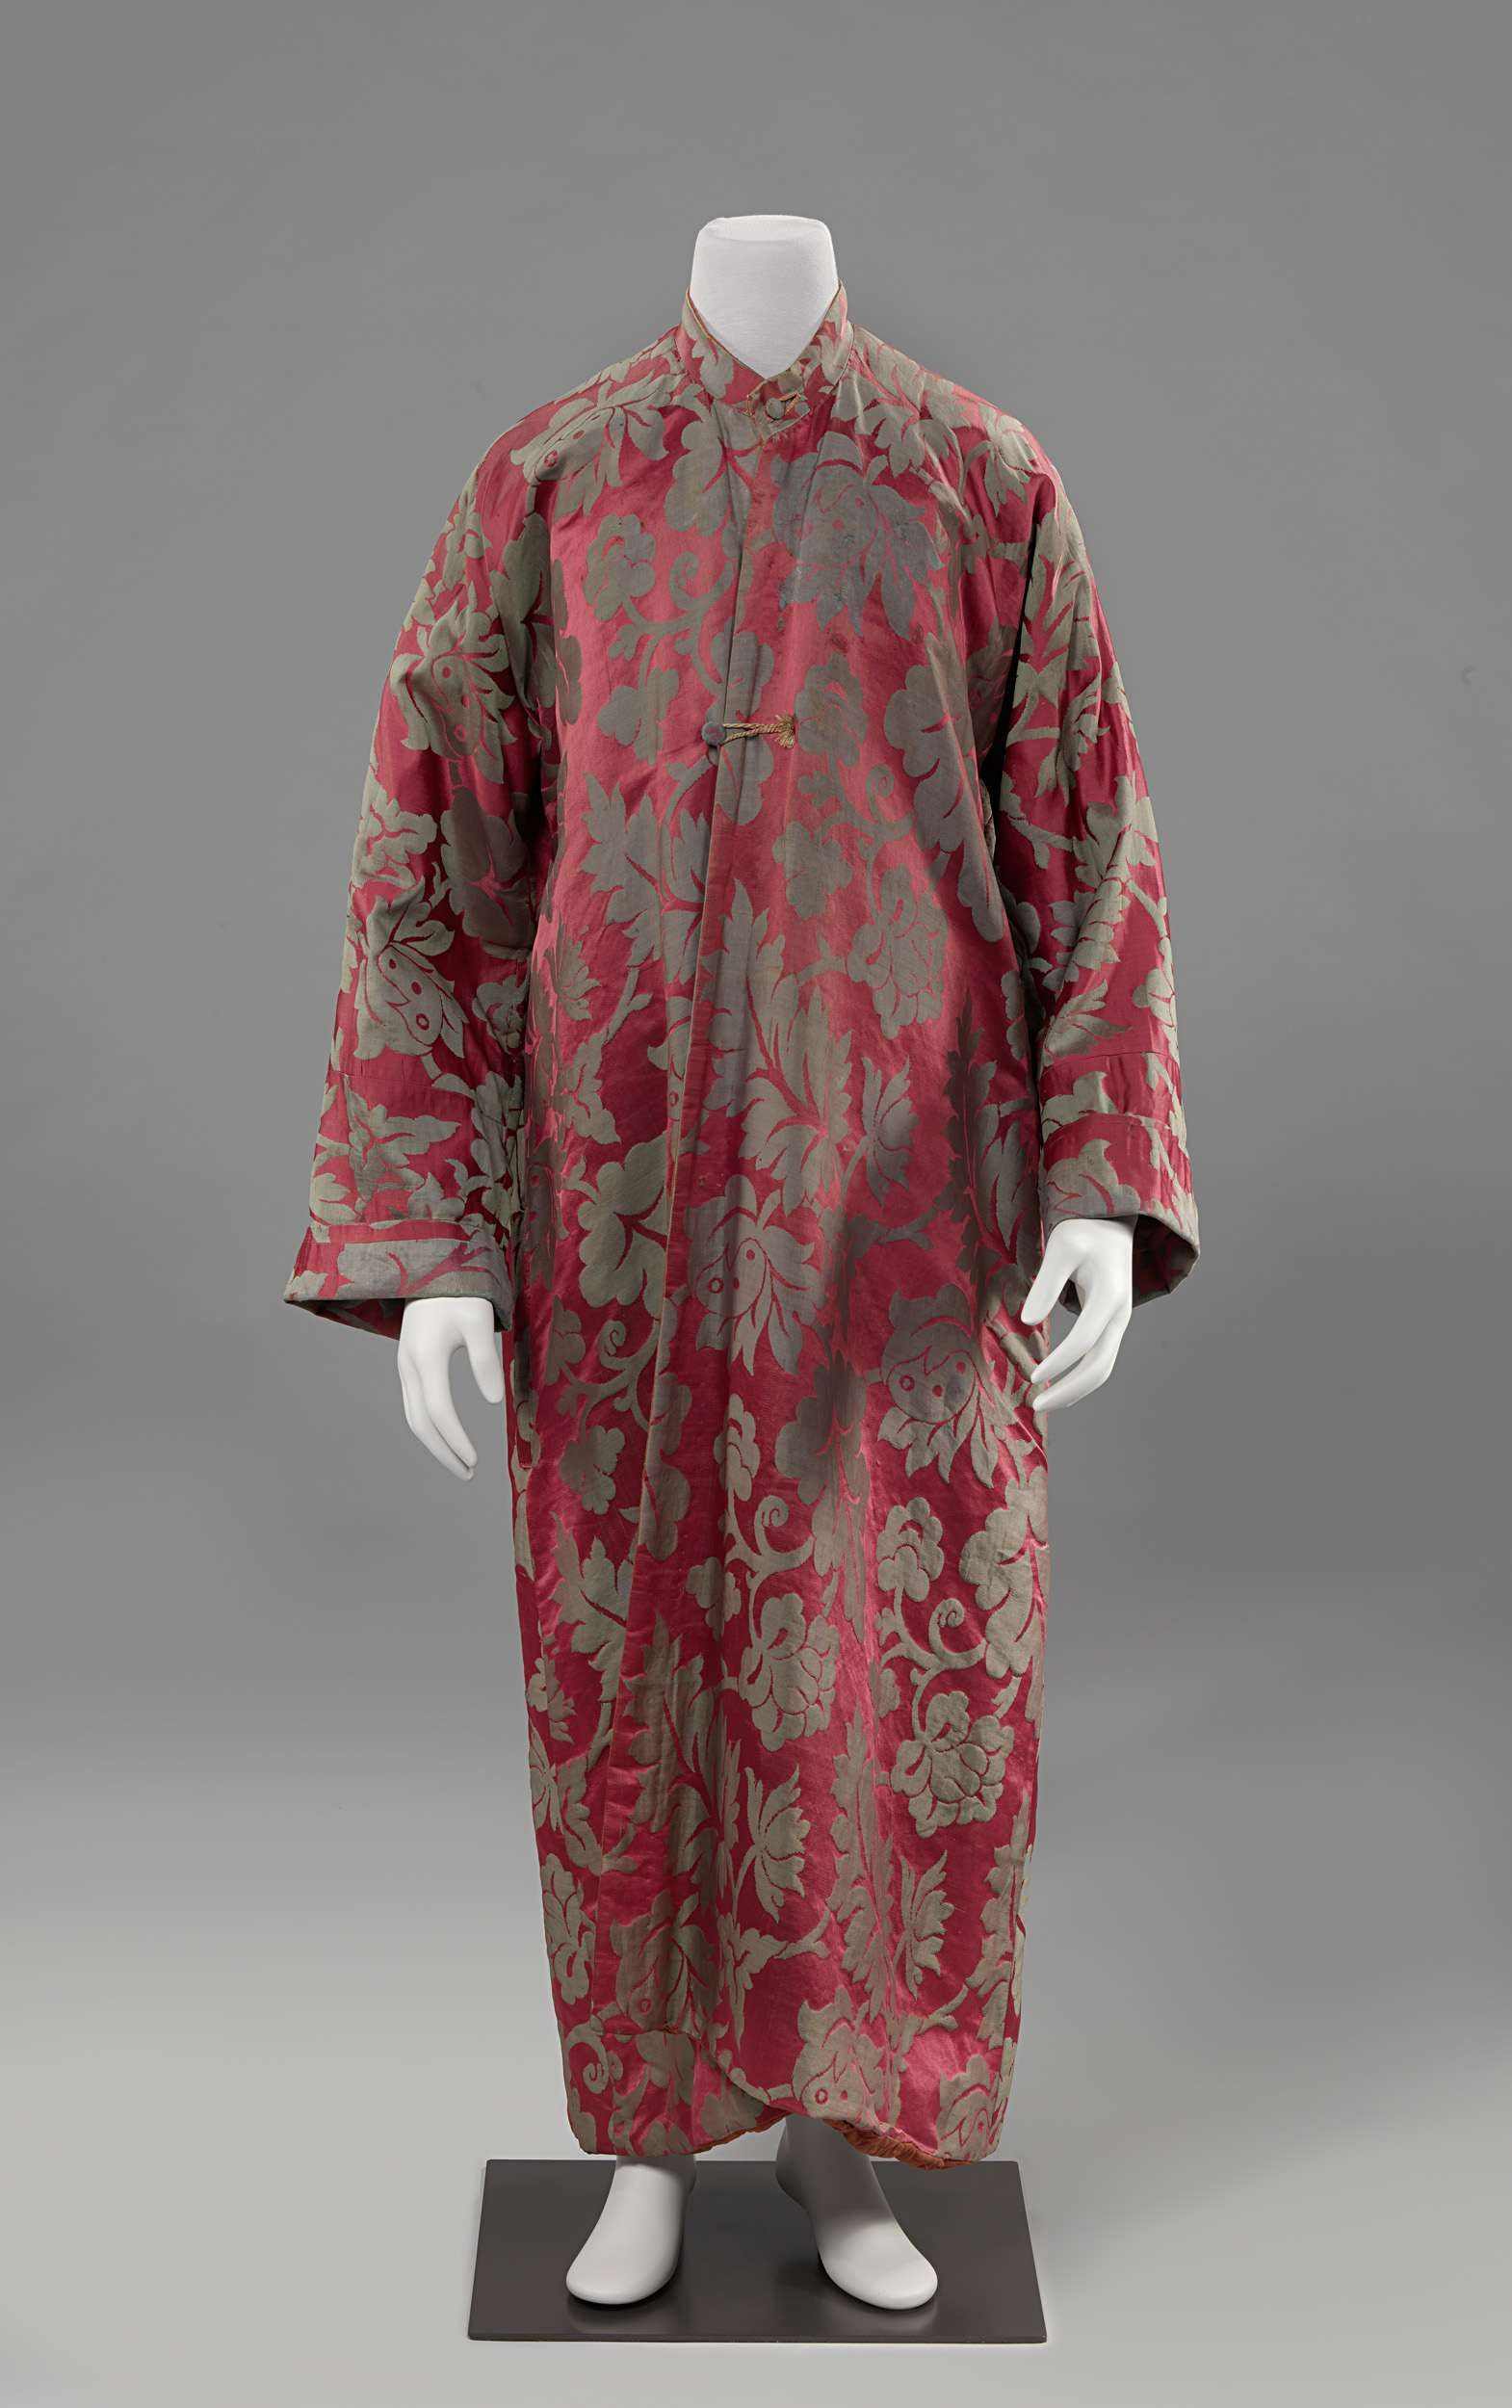 Banyan Japanese Style The Netherlands C 1775 C